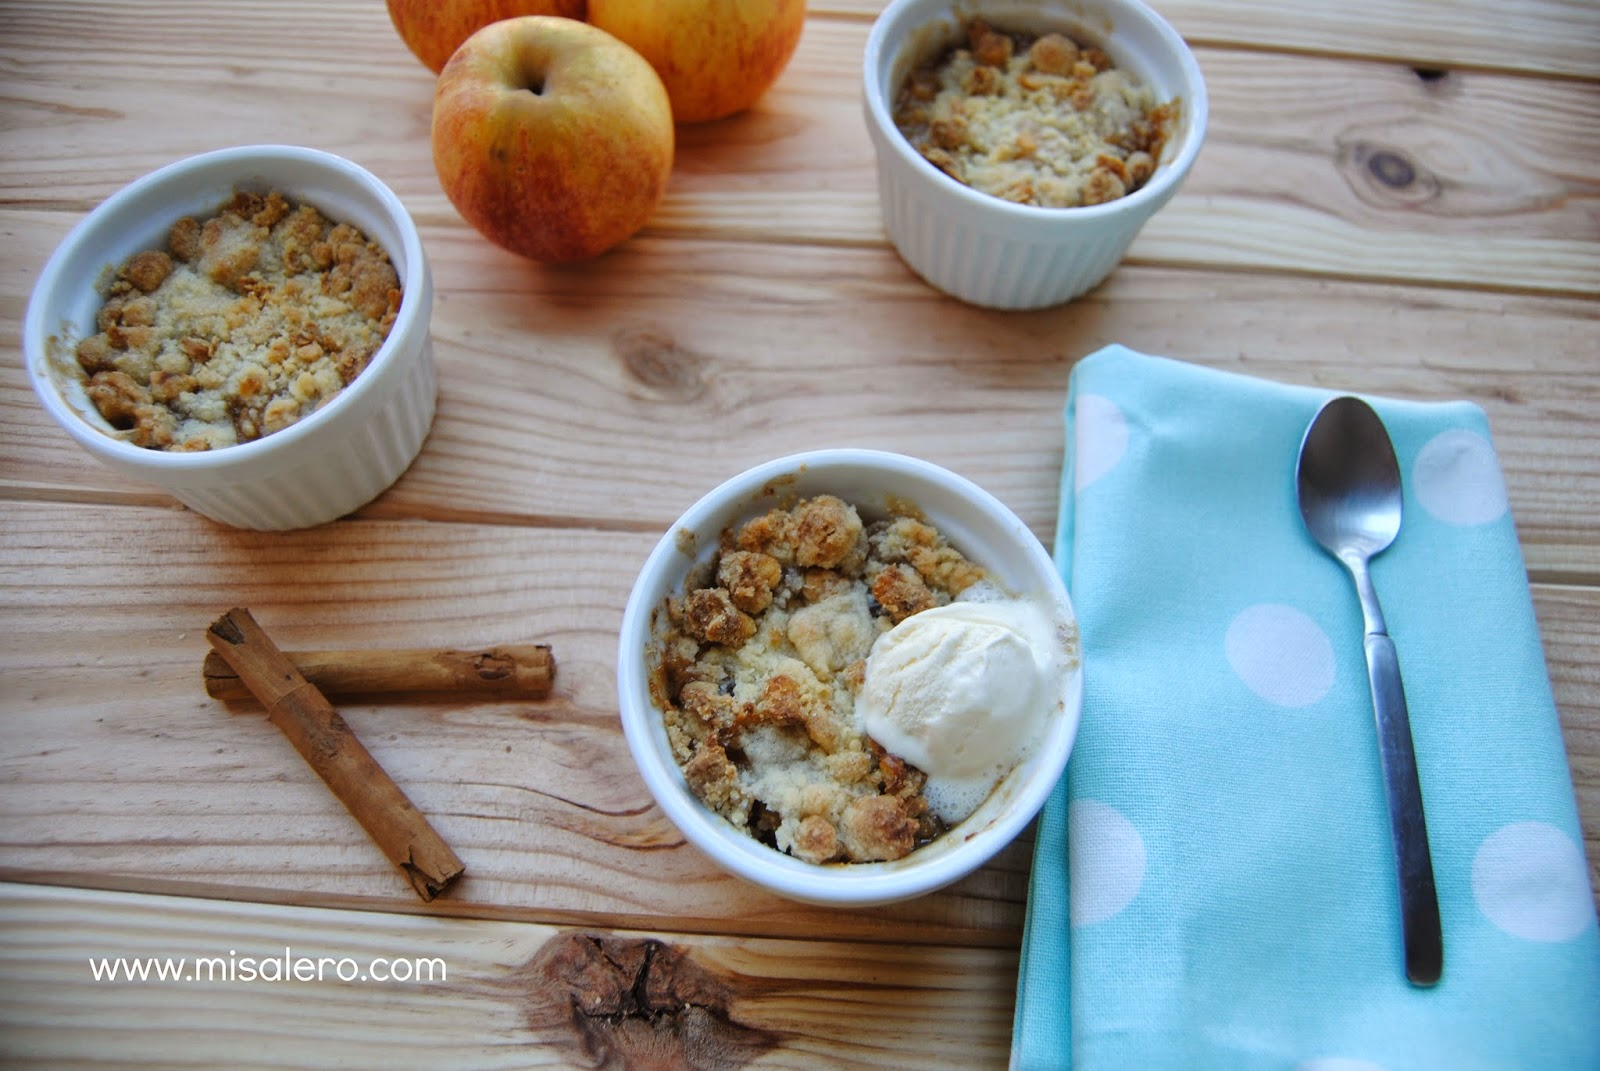 http://misalero.com/2014/12/apple-crumble.html